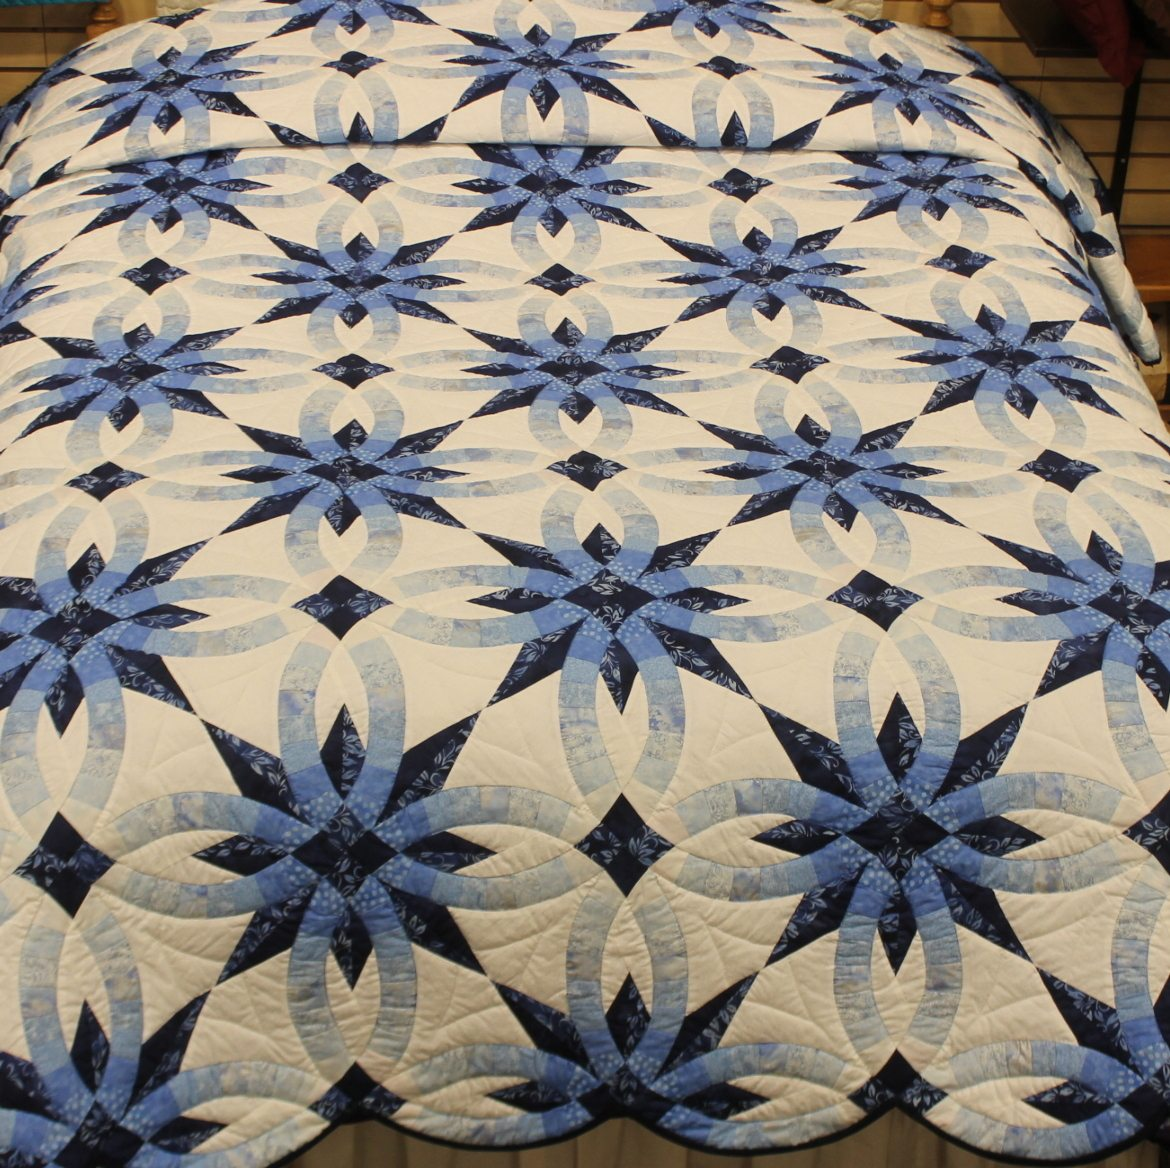 star wedding ring quilt queen 2 wedding ring quilt pattern Star Wedding Ring Quilt Pattern Queen teal and purple quilt Family Farm Quilts